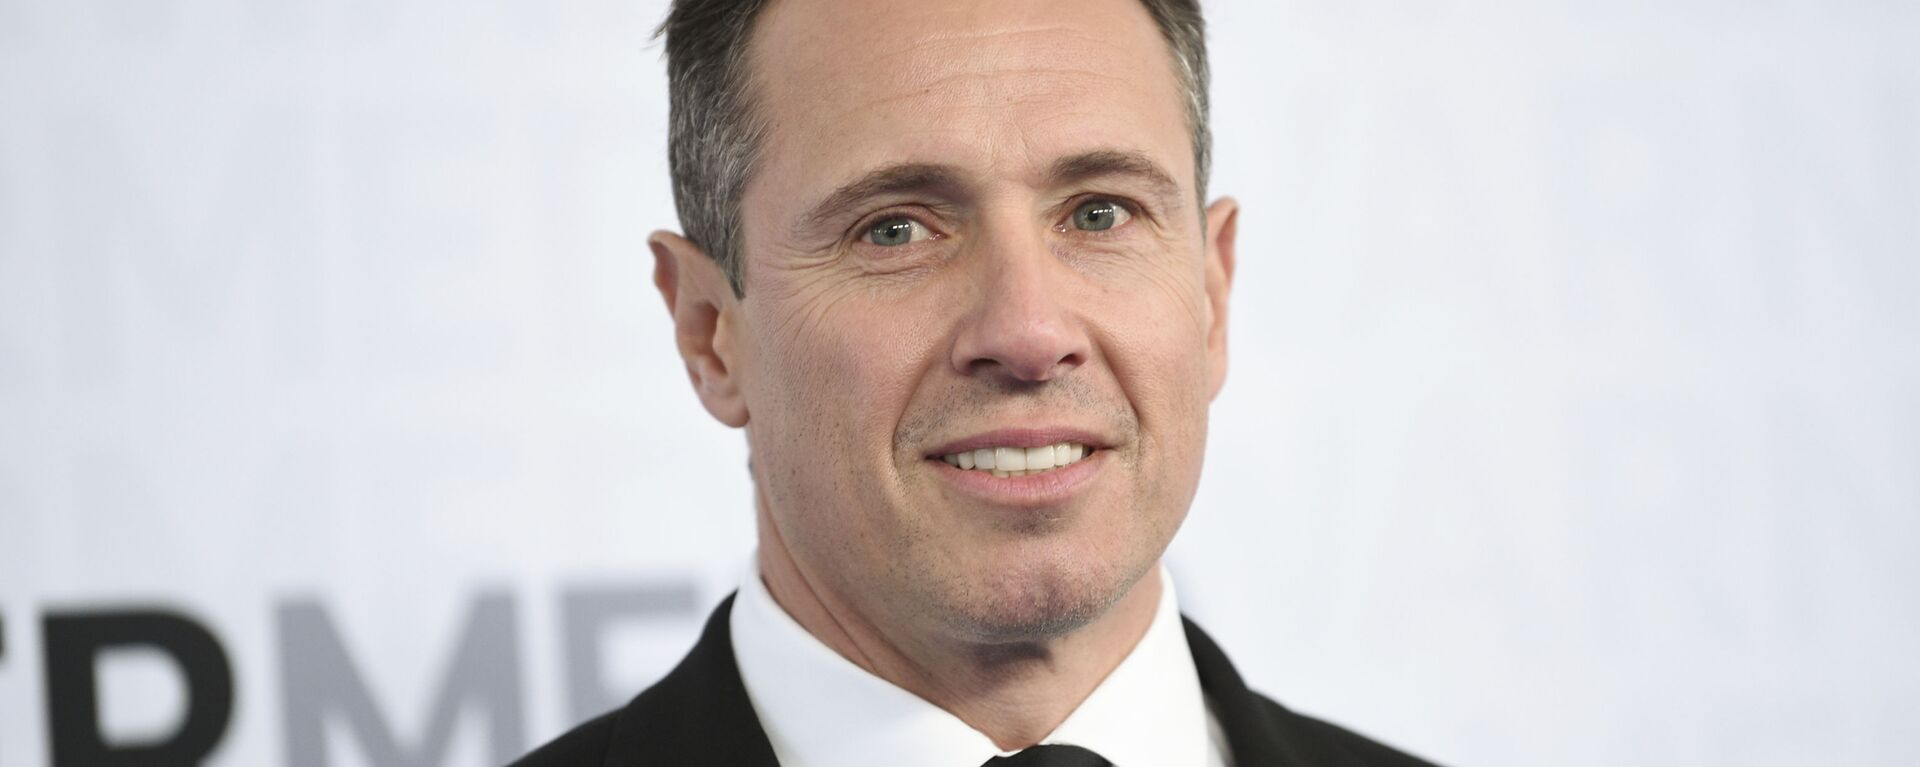 CNN news anchor Chris Cuomo attends the WarnerMedia Upfront at Madison Square Garden on 15 May 2019, in New York. - Sputnik International, 1920, 04.08.2021